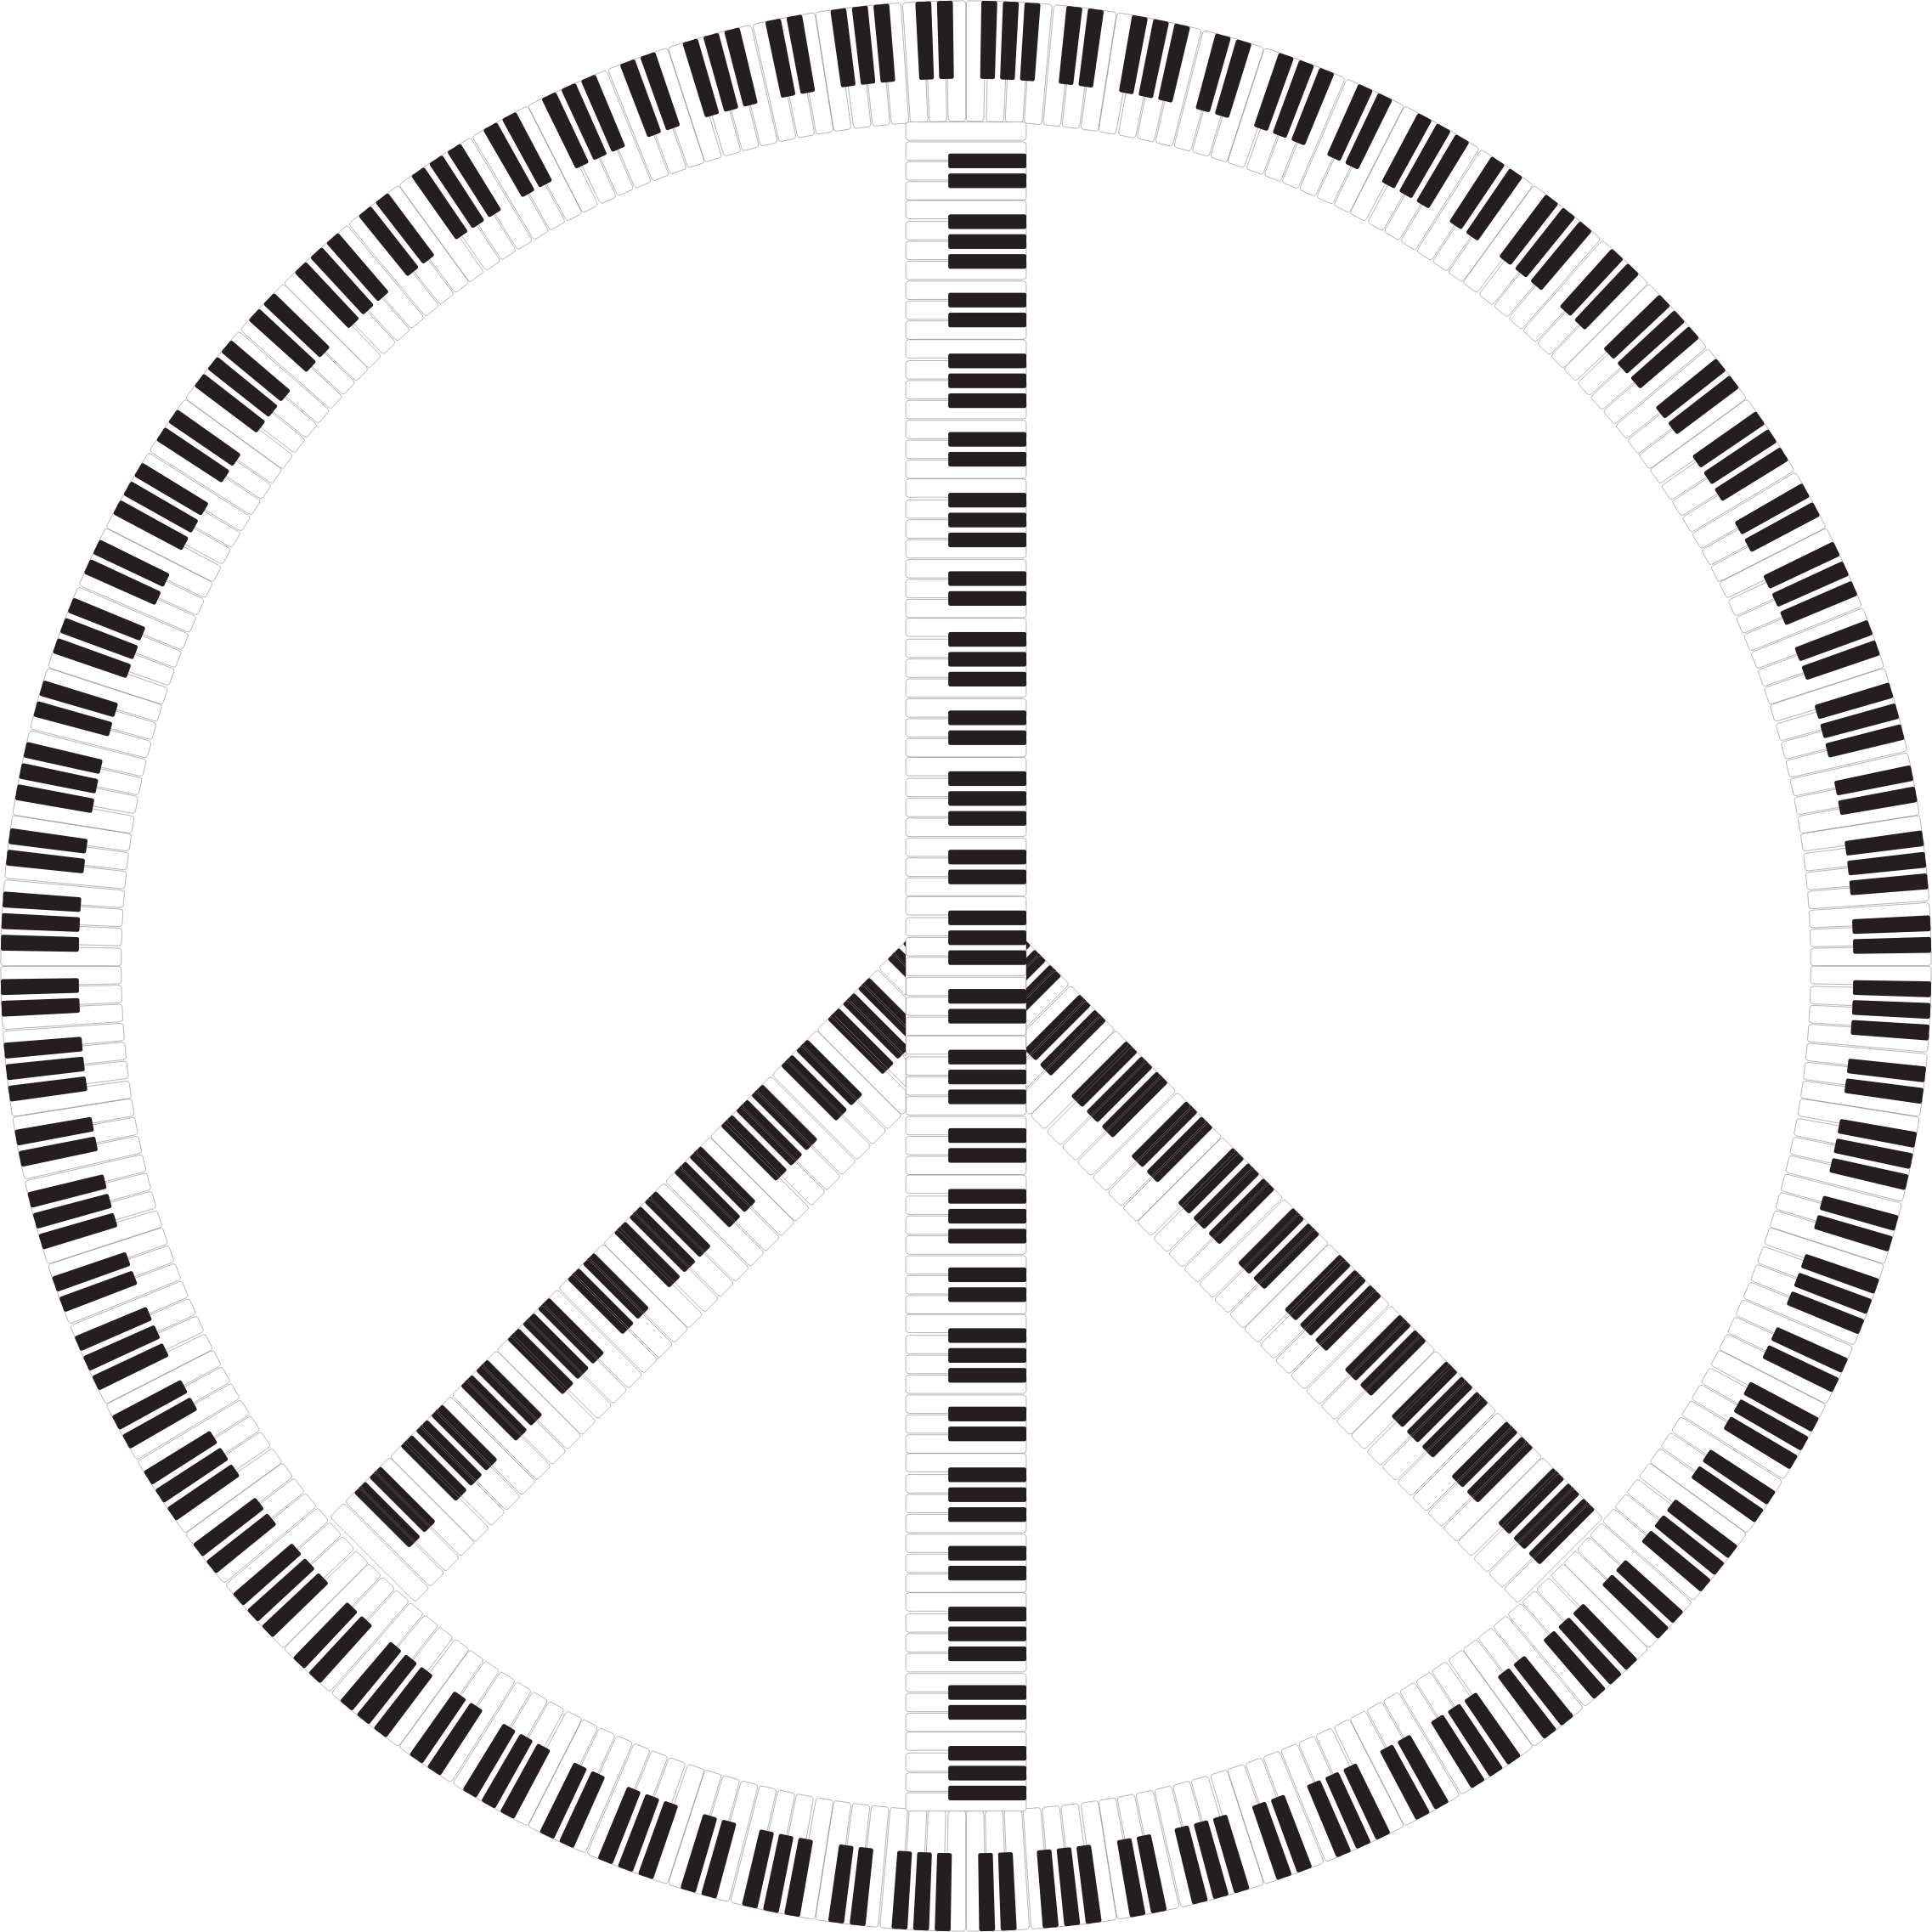 Peace Sign Piano Keys by GDJ